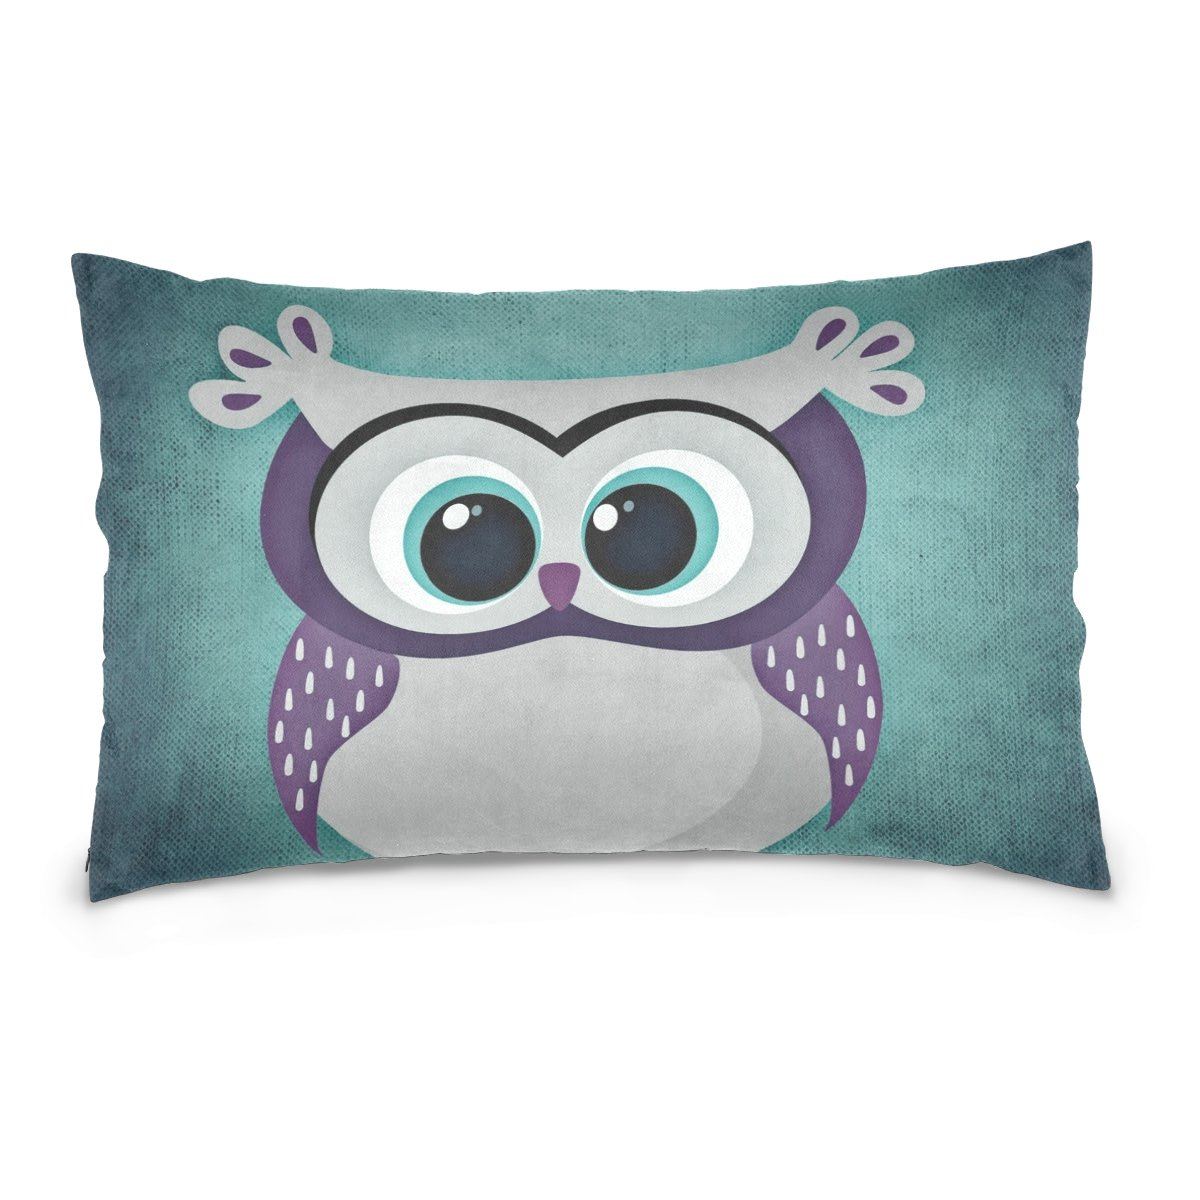 THENAHOME Pillow Covers Pillow Protectors Bed Bug Dust Mite Resistant Standard Pillow Cases Cotton Sateen Allergy Proof Soft Quality Covers with Cartoon Animal Owl for Bedding